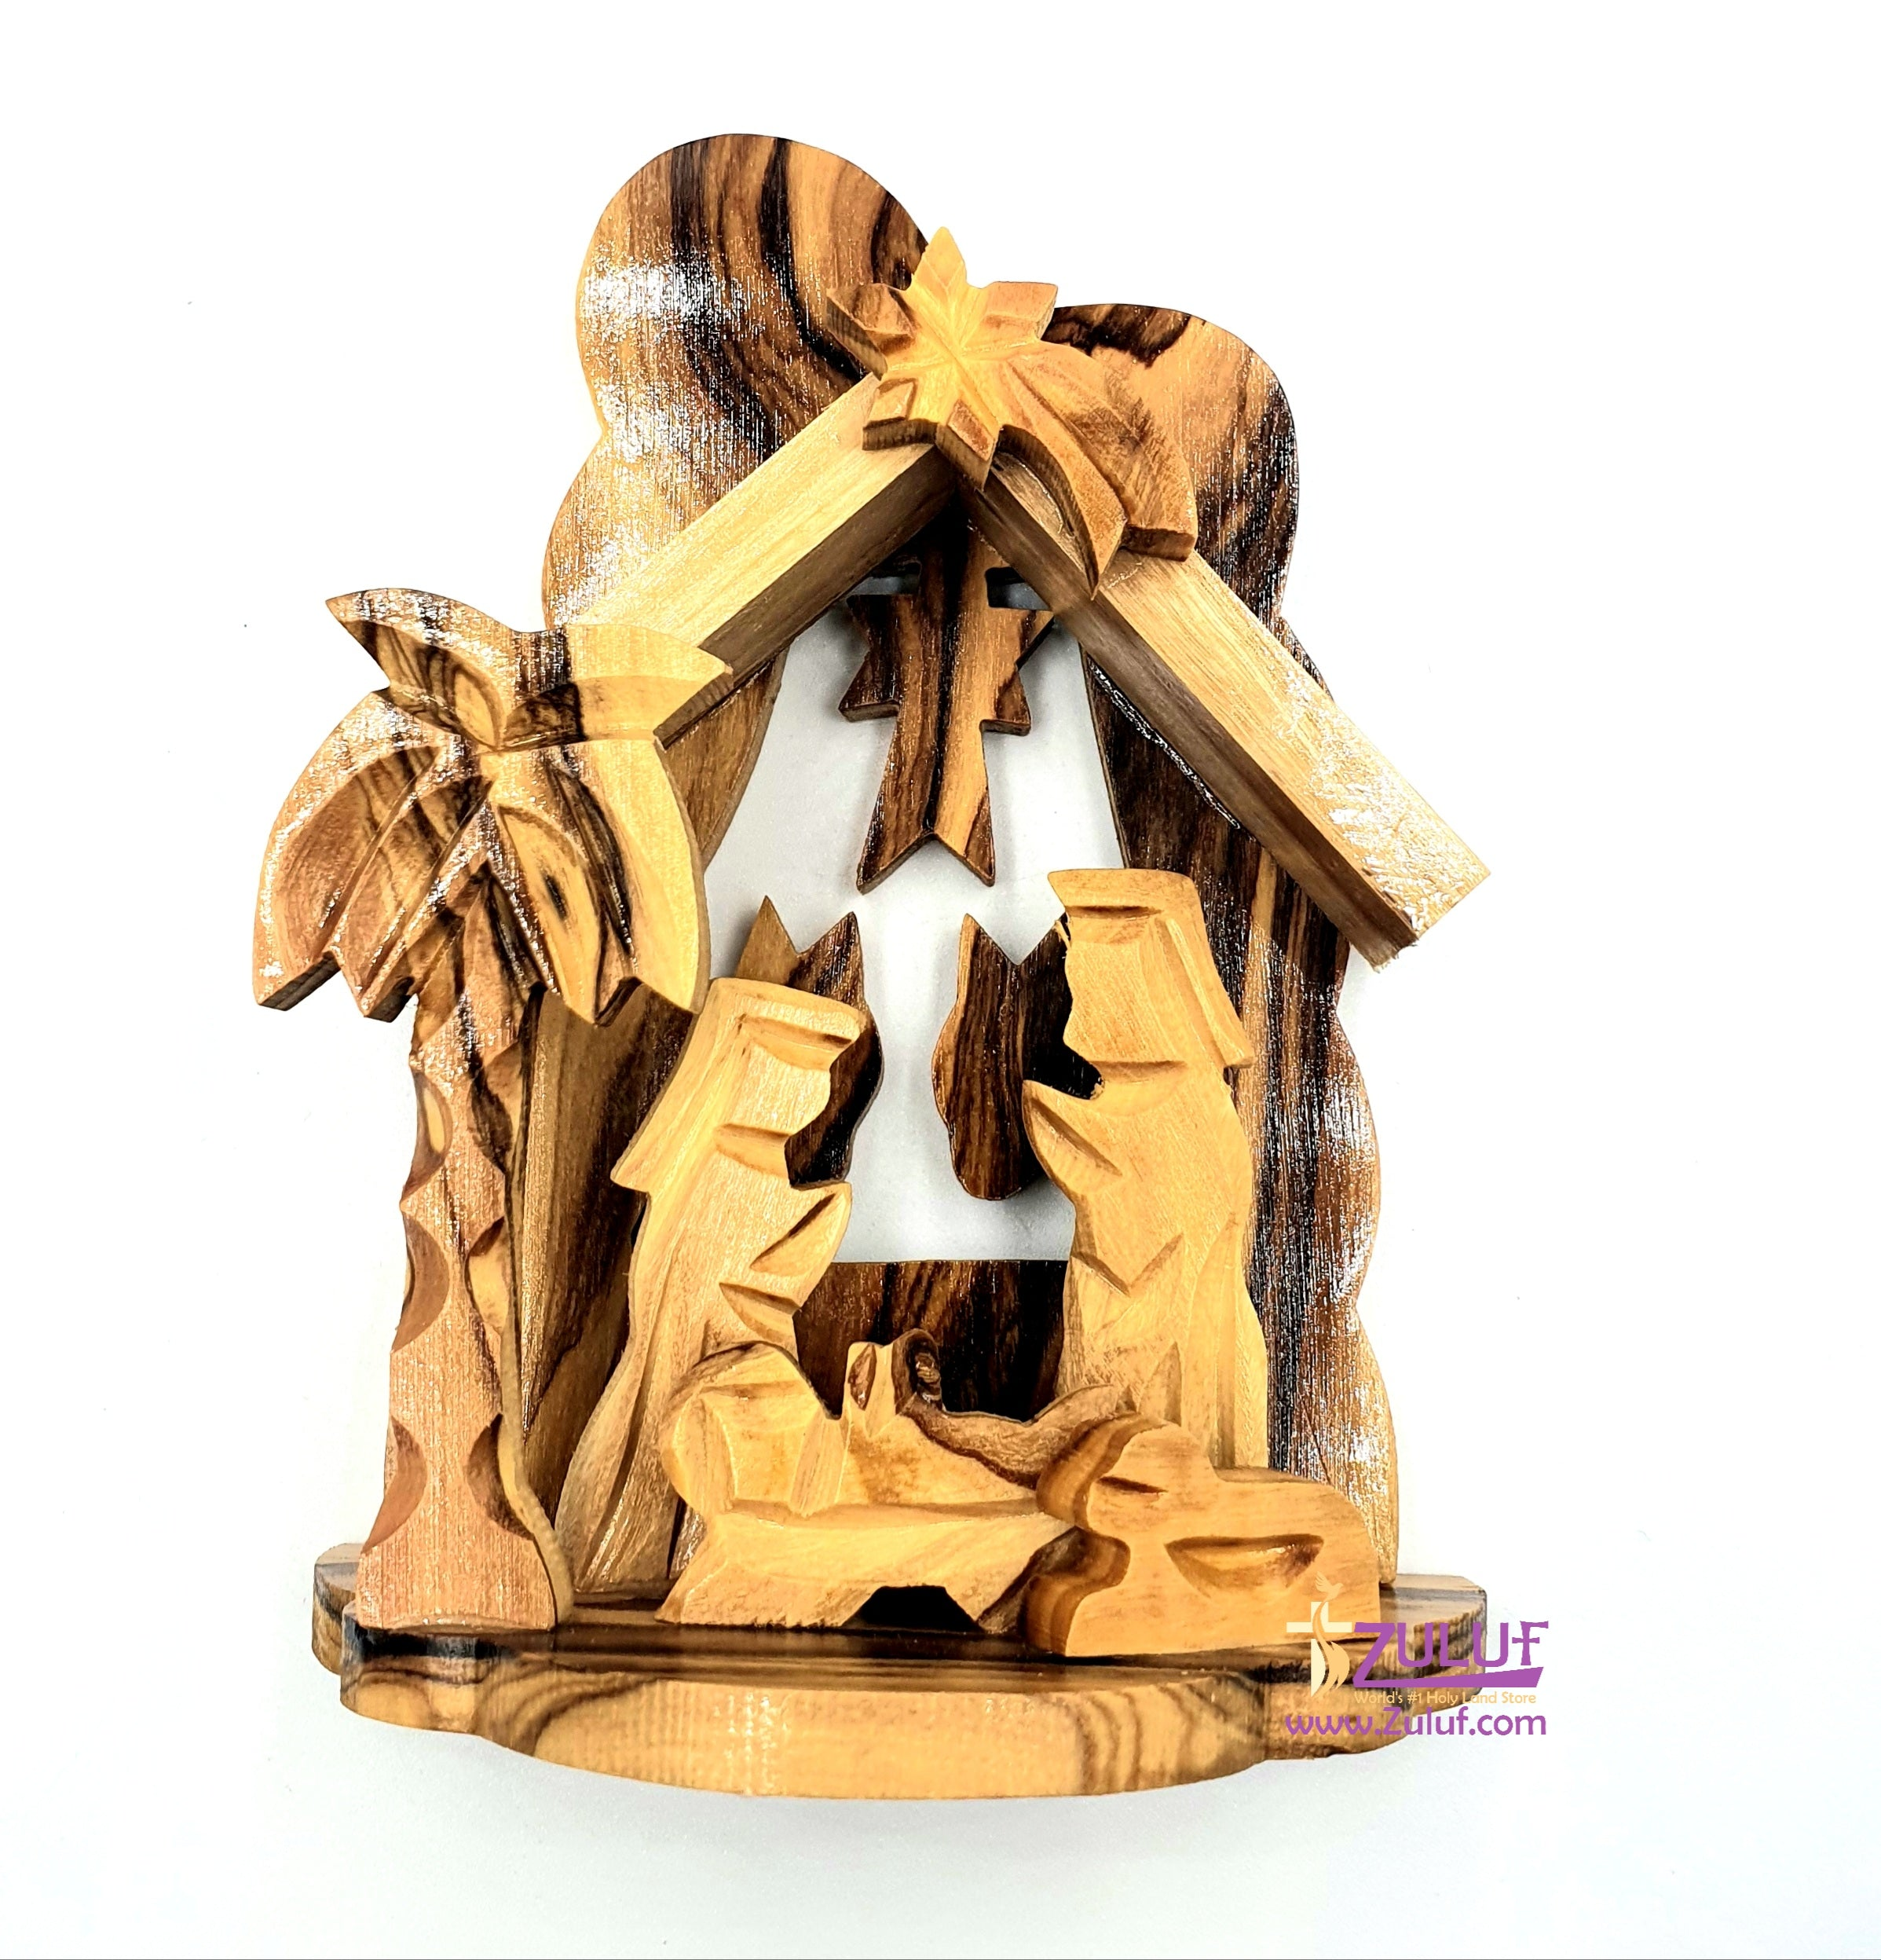 Olivewood Olive Wood Nativity 11cm Scene Set From Jerusalem Holy land  by Zuluf - NAT010